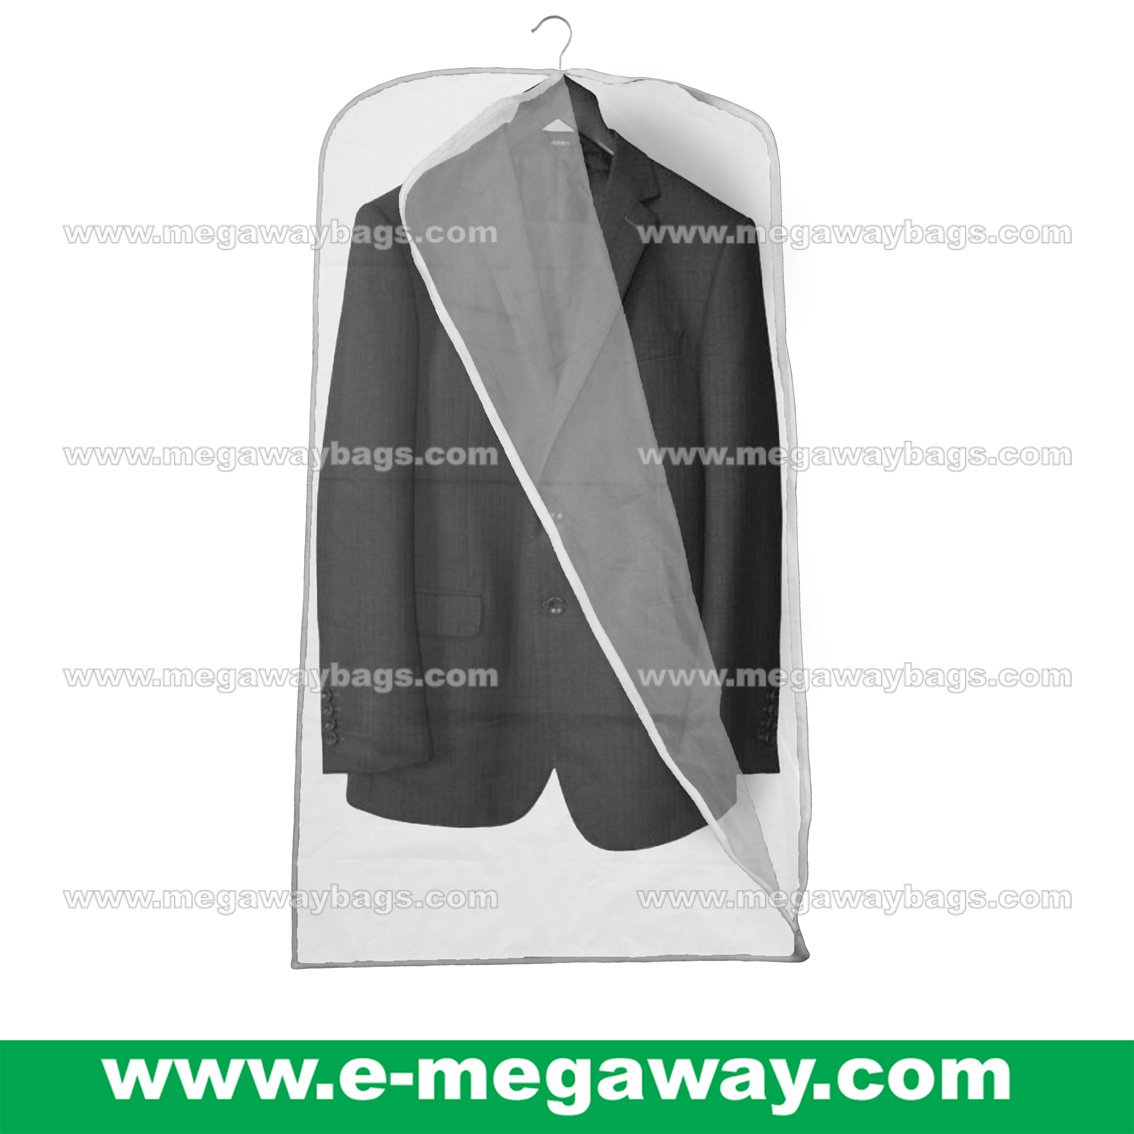 Wedding Suits Dress Garment Vinyl Zipper Bag Semi-Transparent Travel MegawayBags #CC-0944